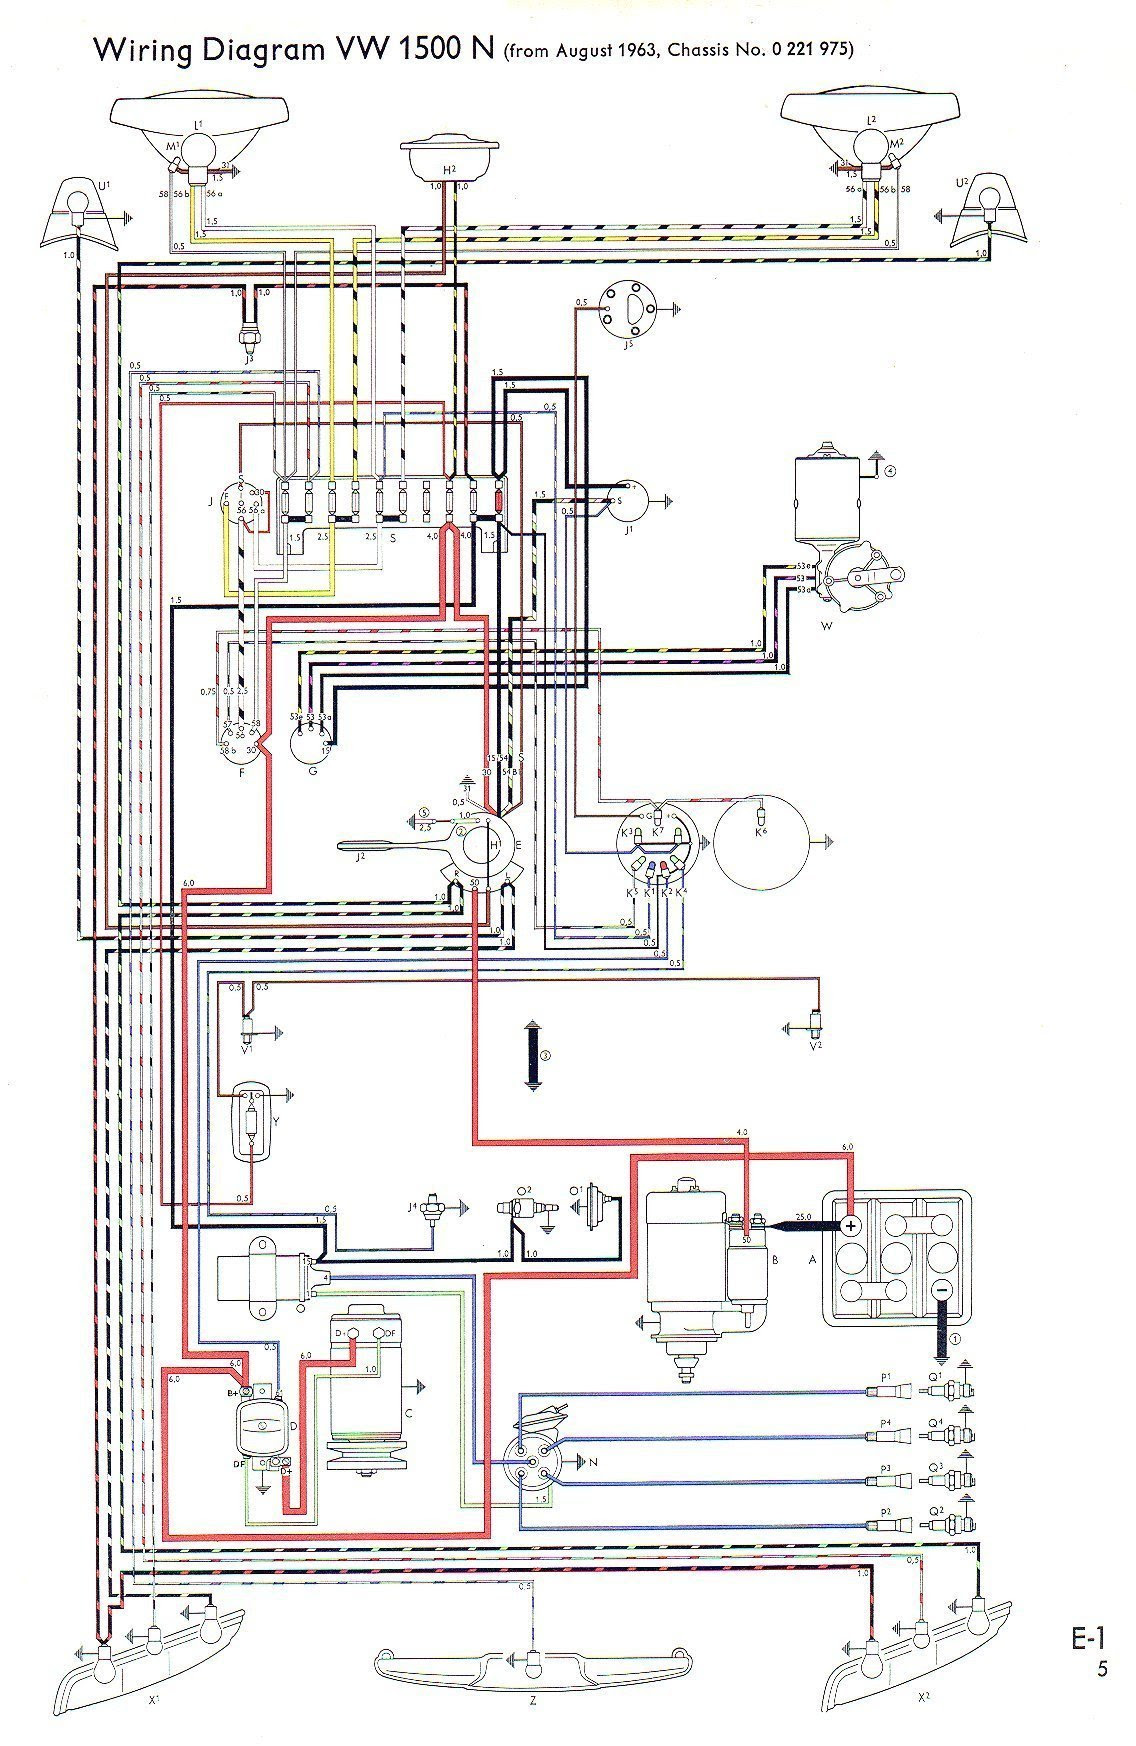 71 Vw Type 3 Wiring Diagram Wiring Diagram Central1 Central1 Bujinkan It